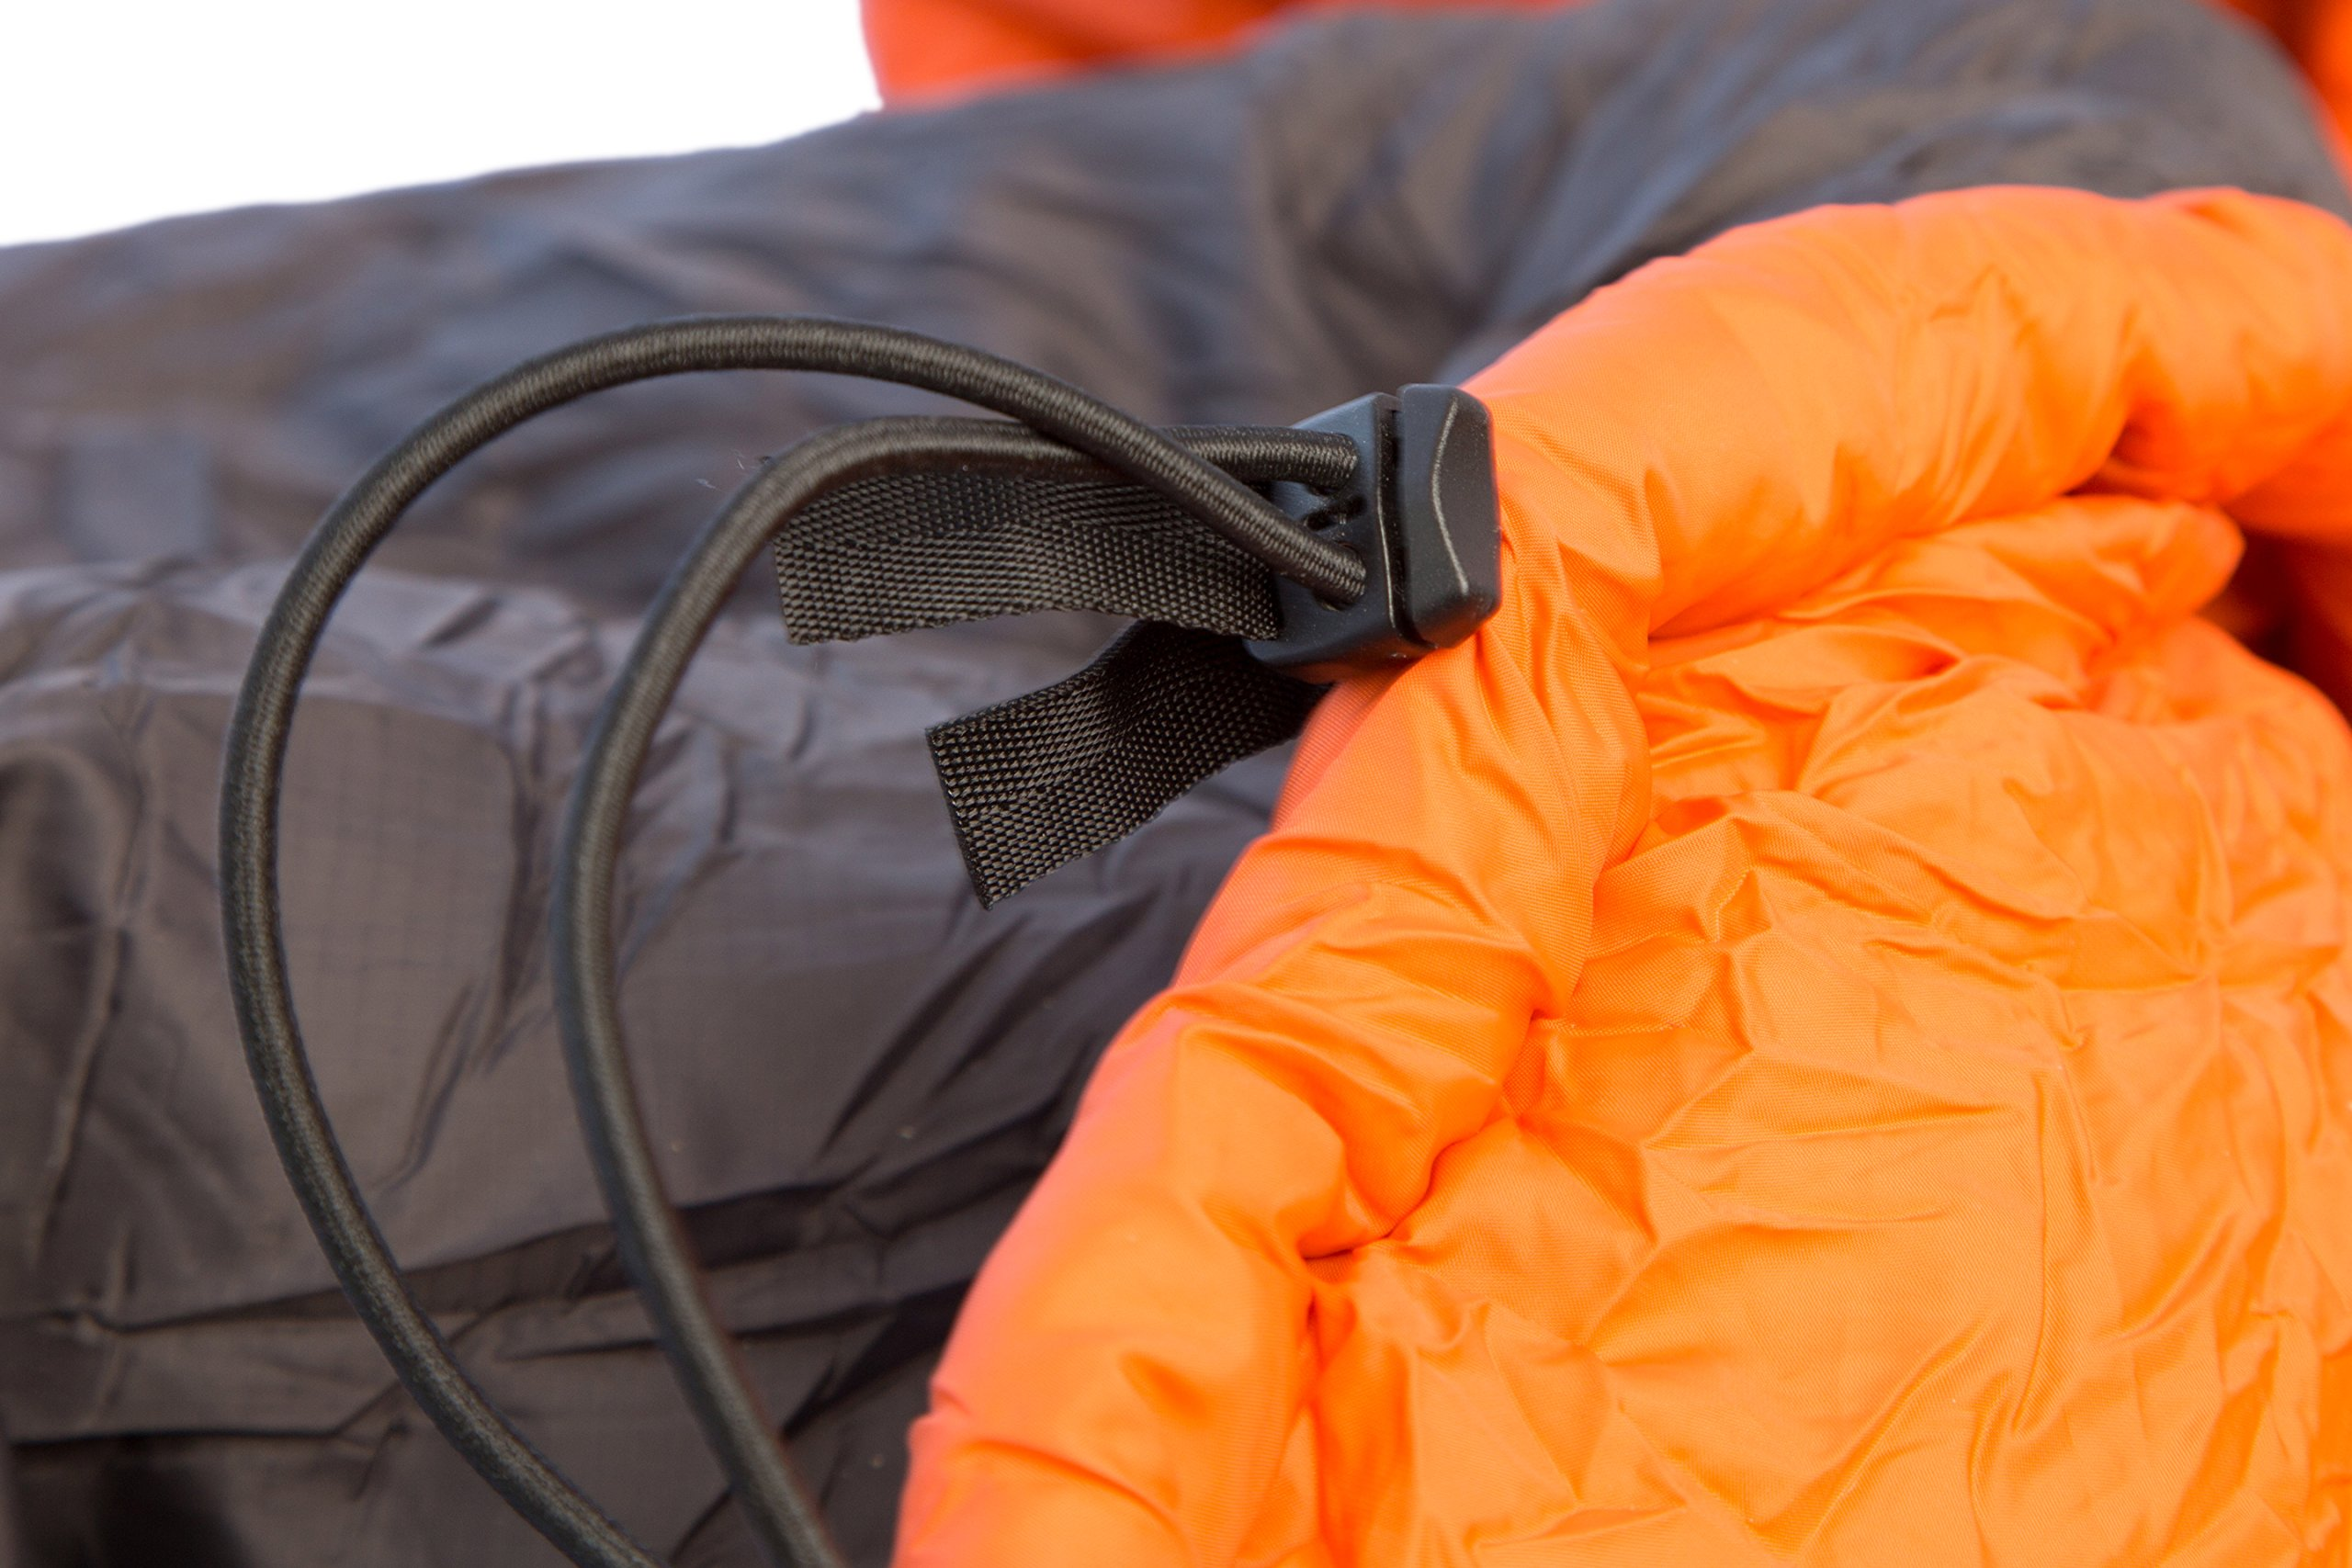 ENO Eagles Nest Outfitters - Vulcan Underquilt, Ultralight Camping Quilt, Orange/Charcoal by Eagles Nest Outfitters (Image #4)